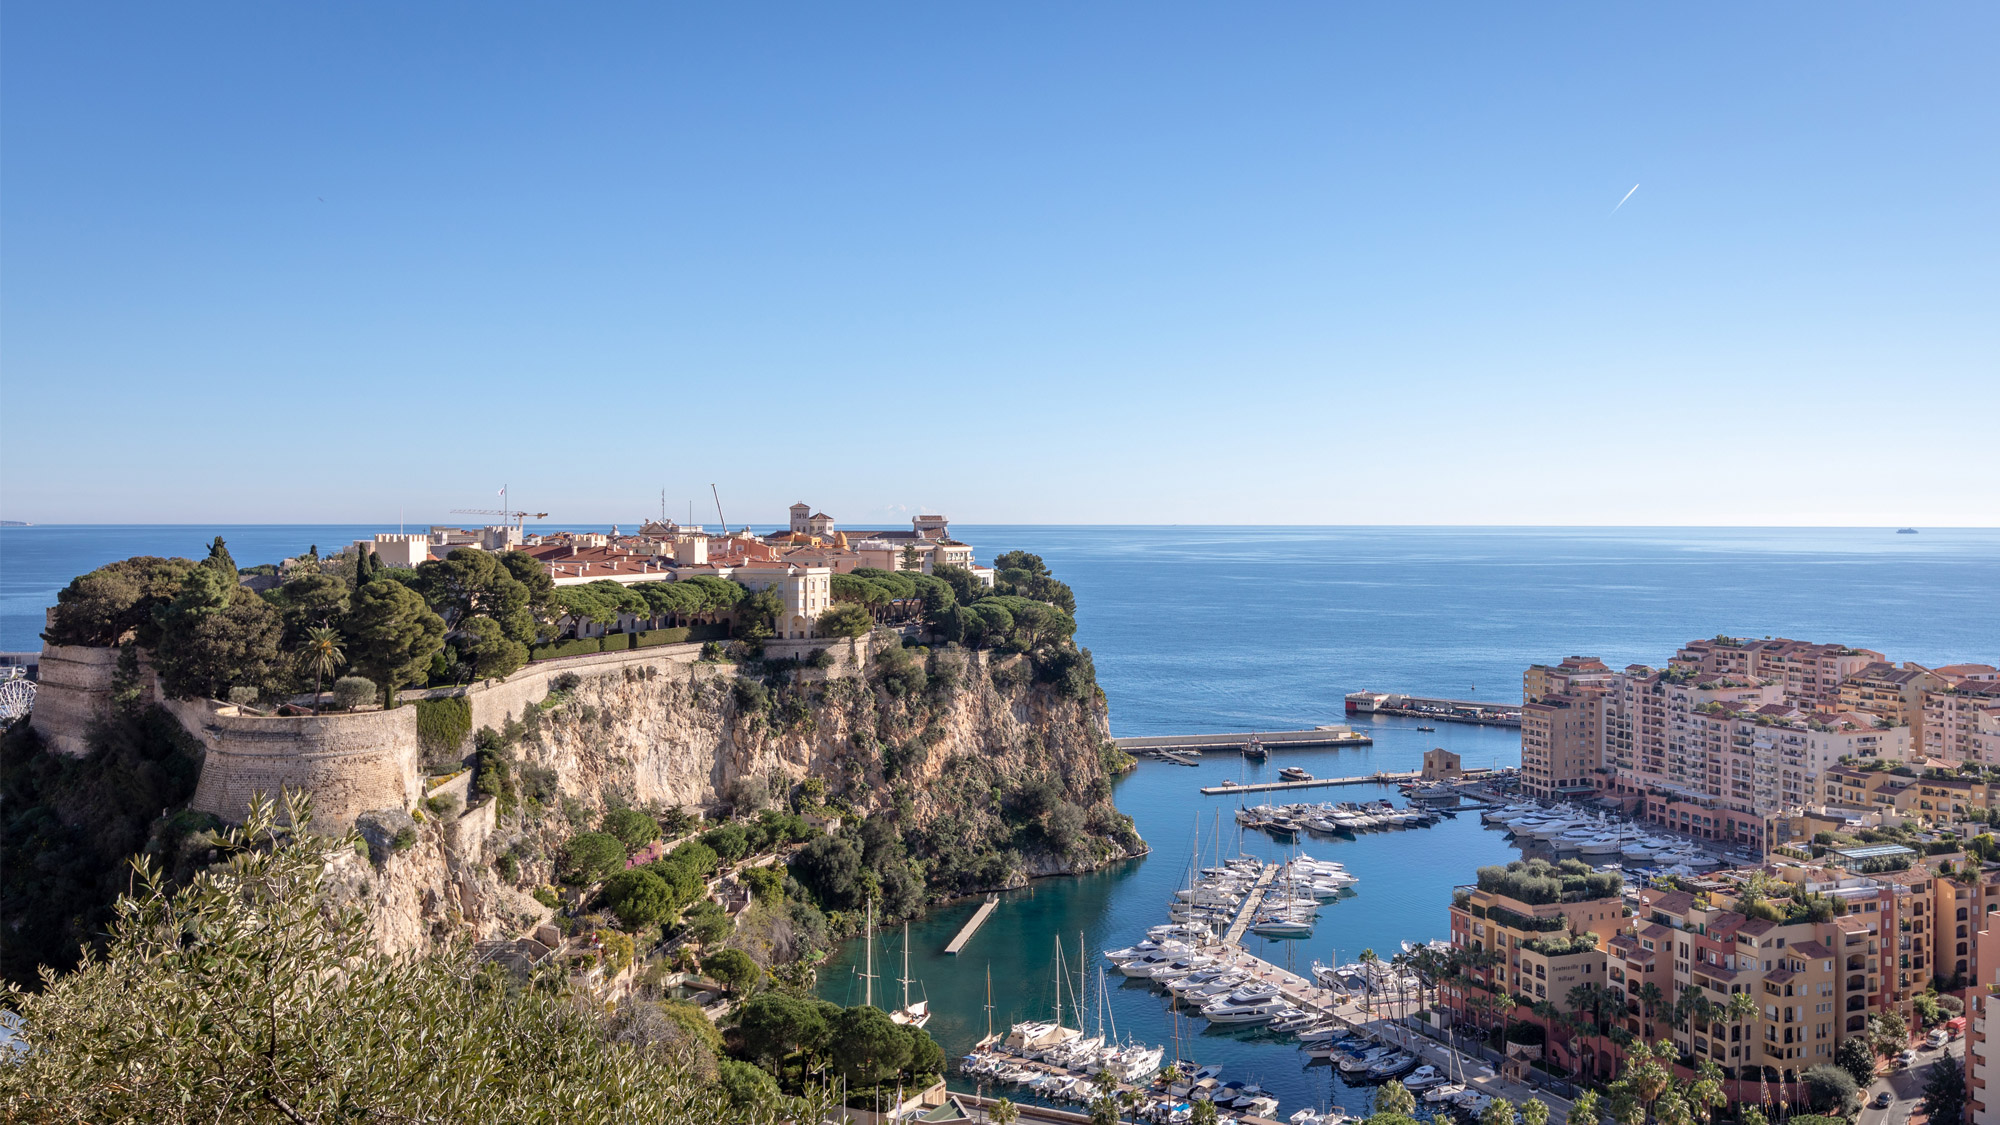 Miells & Partners - Monaco property for sale - apartment for sale in Monaco - Monaco stunning view